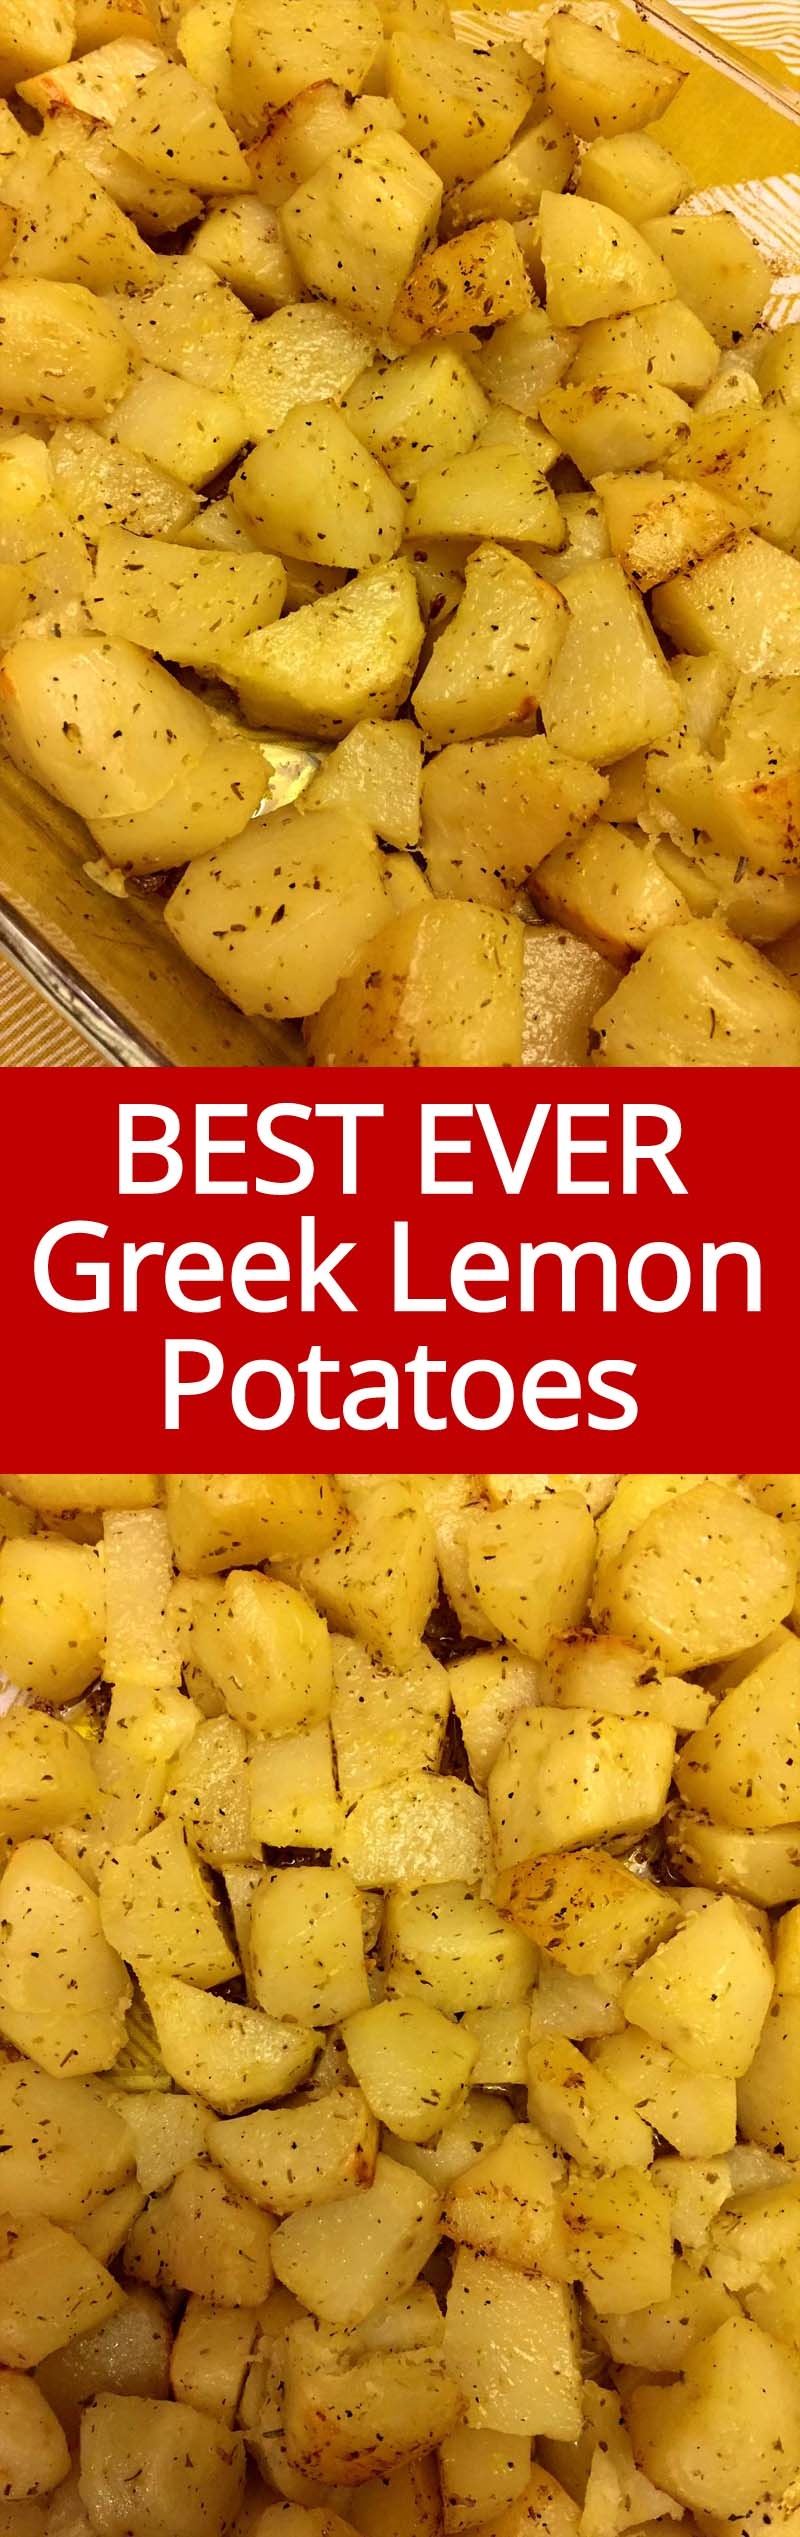 This are the best Greek lemon potatoes ever! This recipe is AUTHENTIC, these lemon potatoes taste just like the ones in a Greek restaurant!